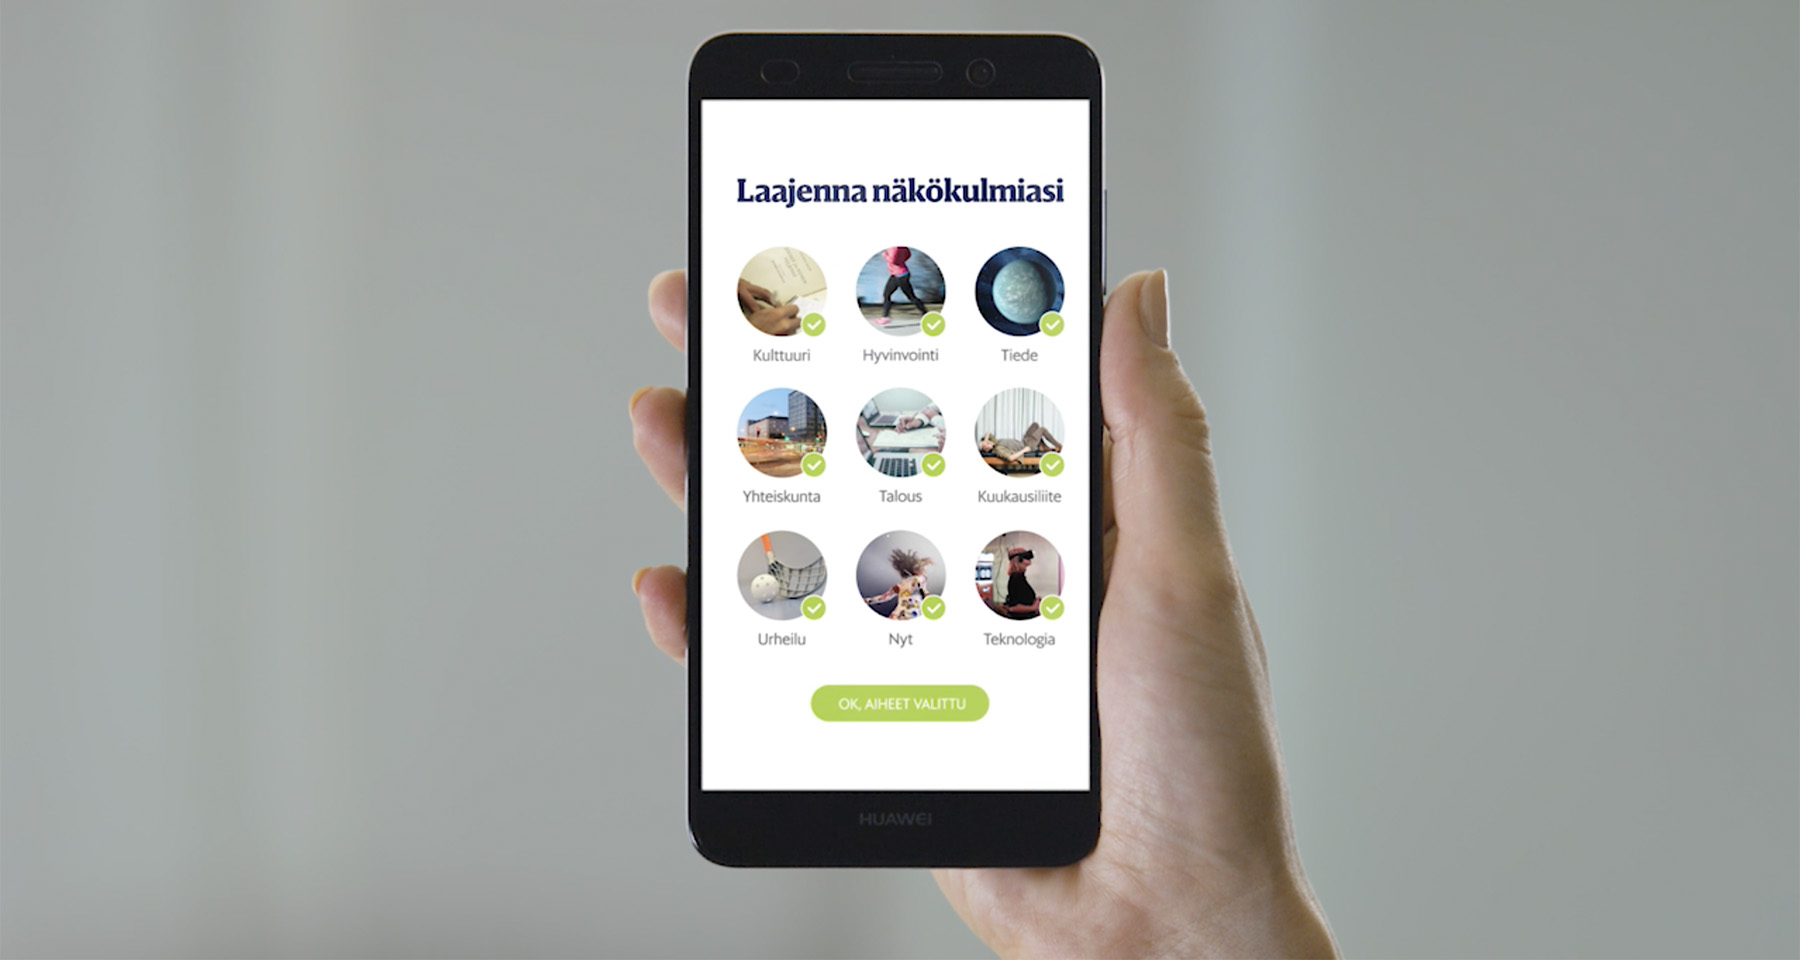 Helsingin Sanomat campaign strengthens emotional connection to digital product